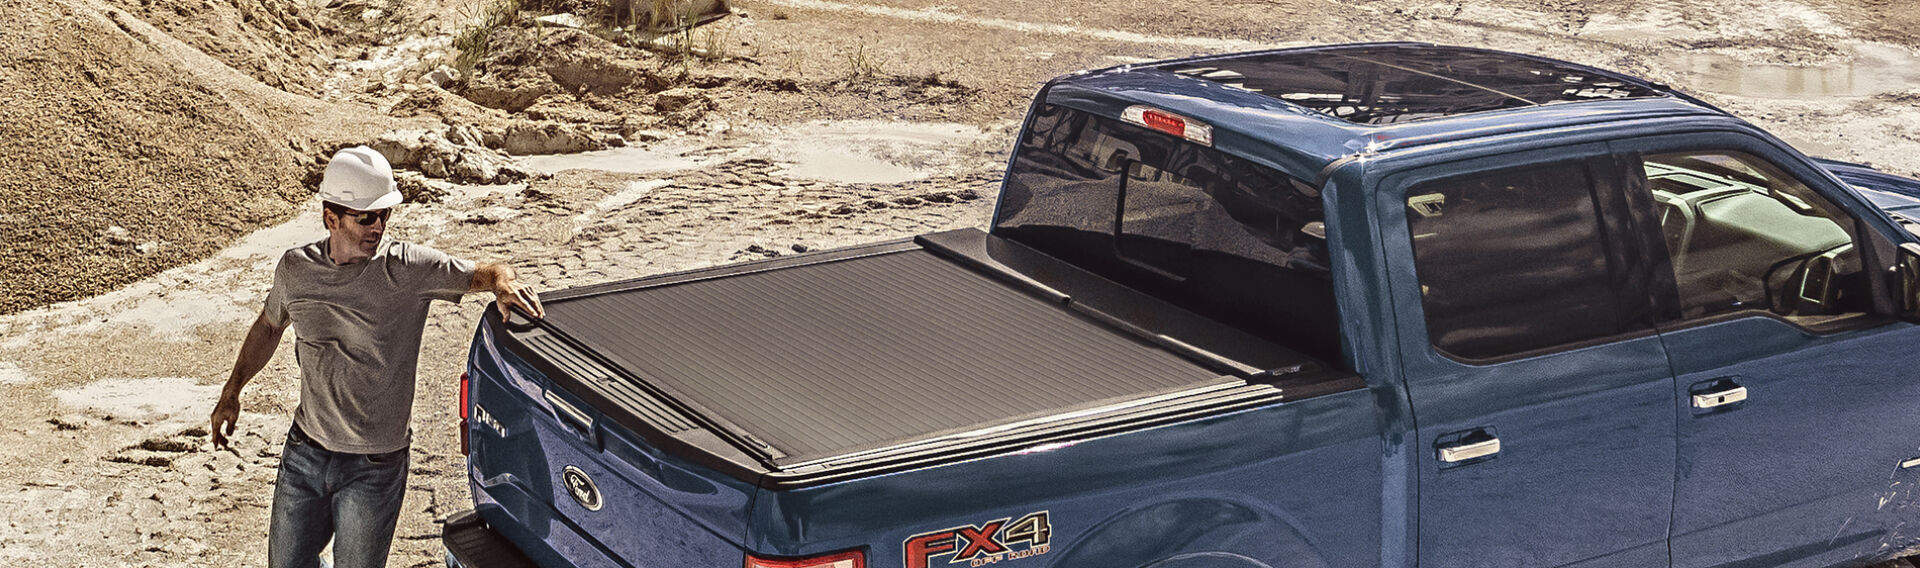 It's Never Been Easier to Shop! Explore our brand new website to find the right truck bed cover for you today! Shop Now